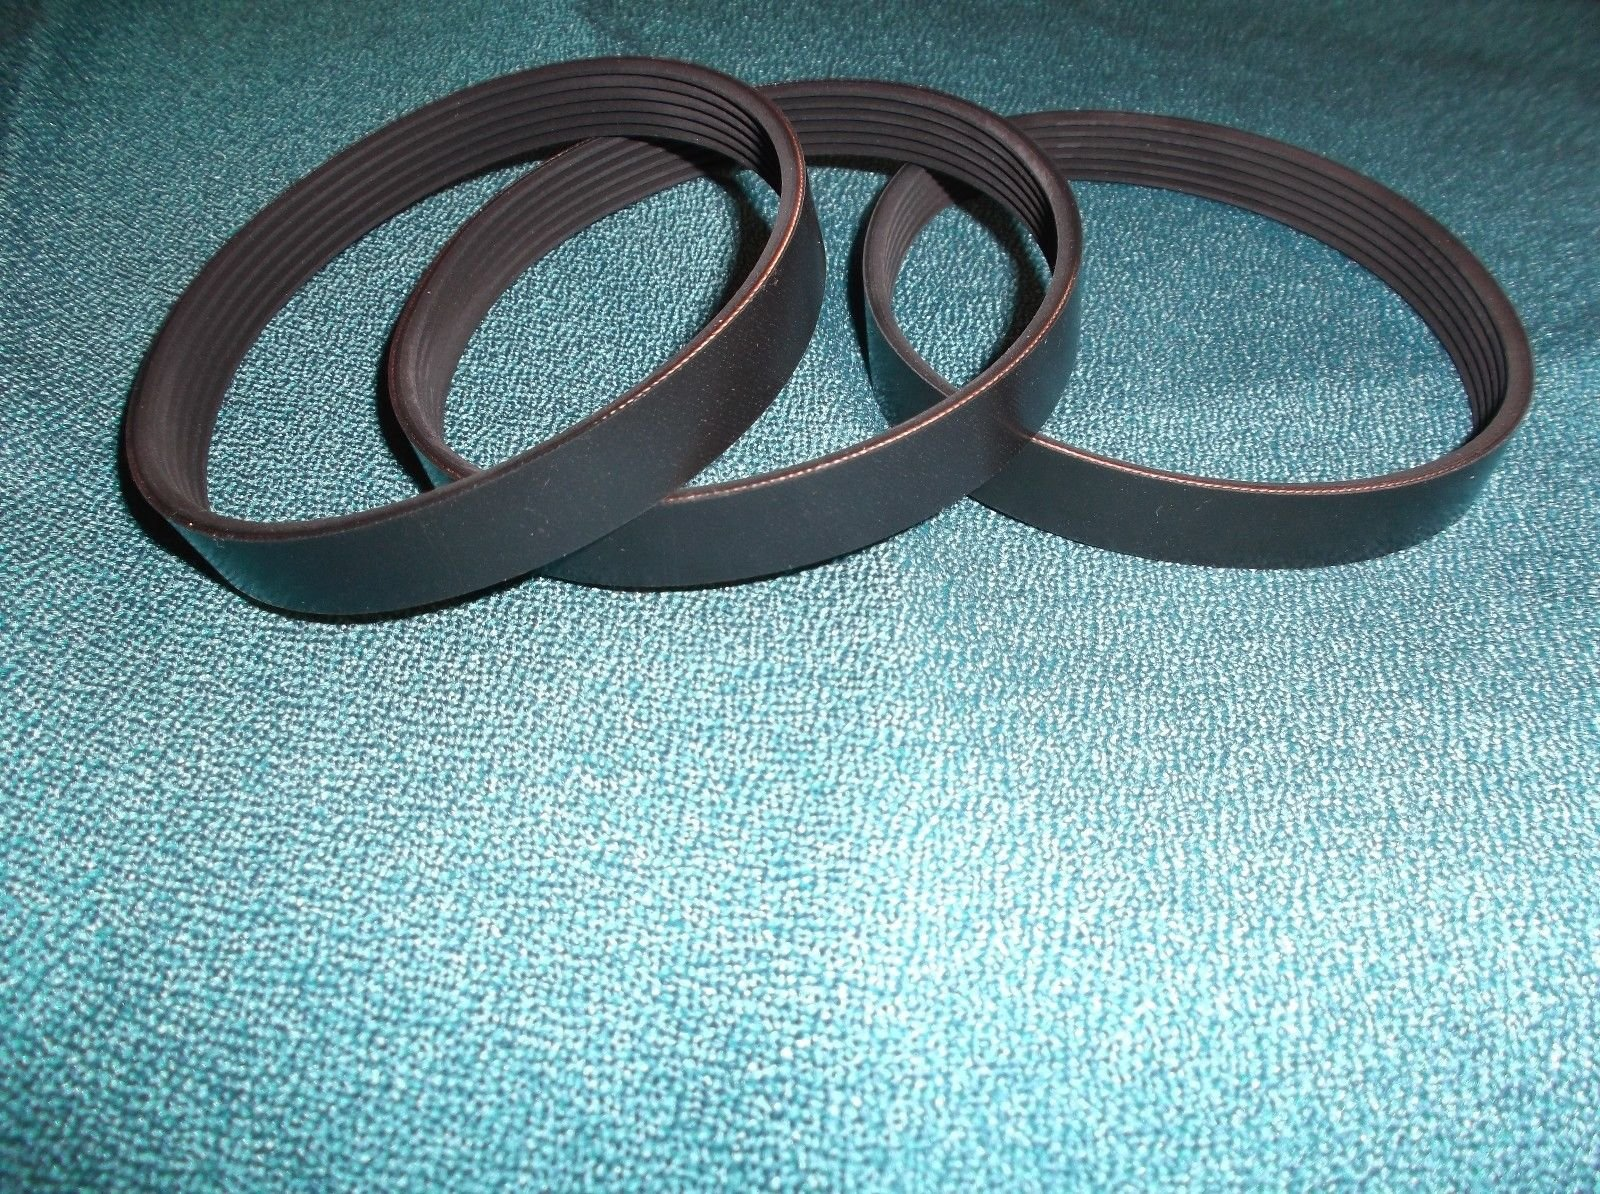 3 NEW DRIVE BELTS MADE IN USA FOR DELTA TP305 PLANER